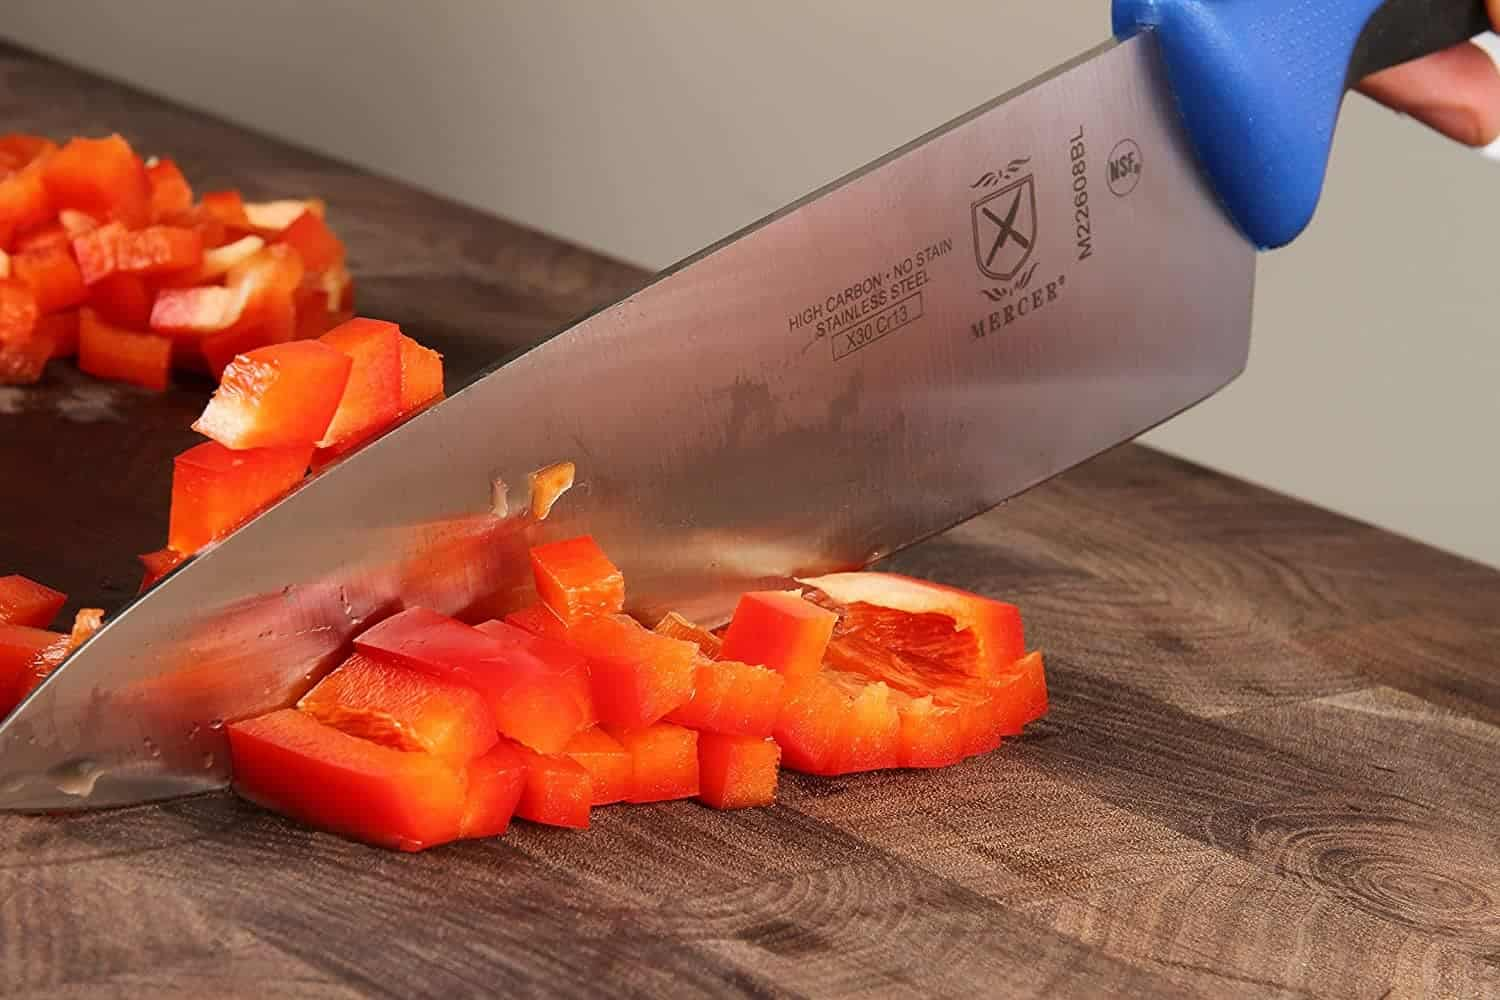 Chopping peppers with chef knife